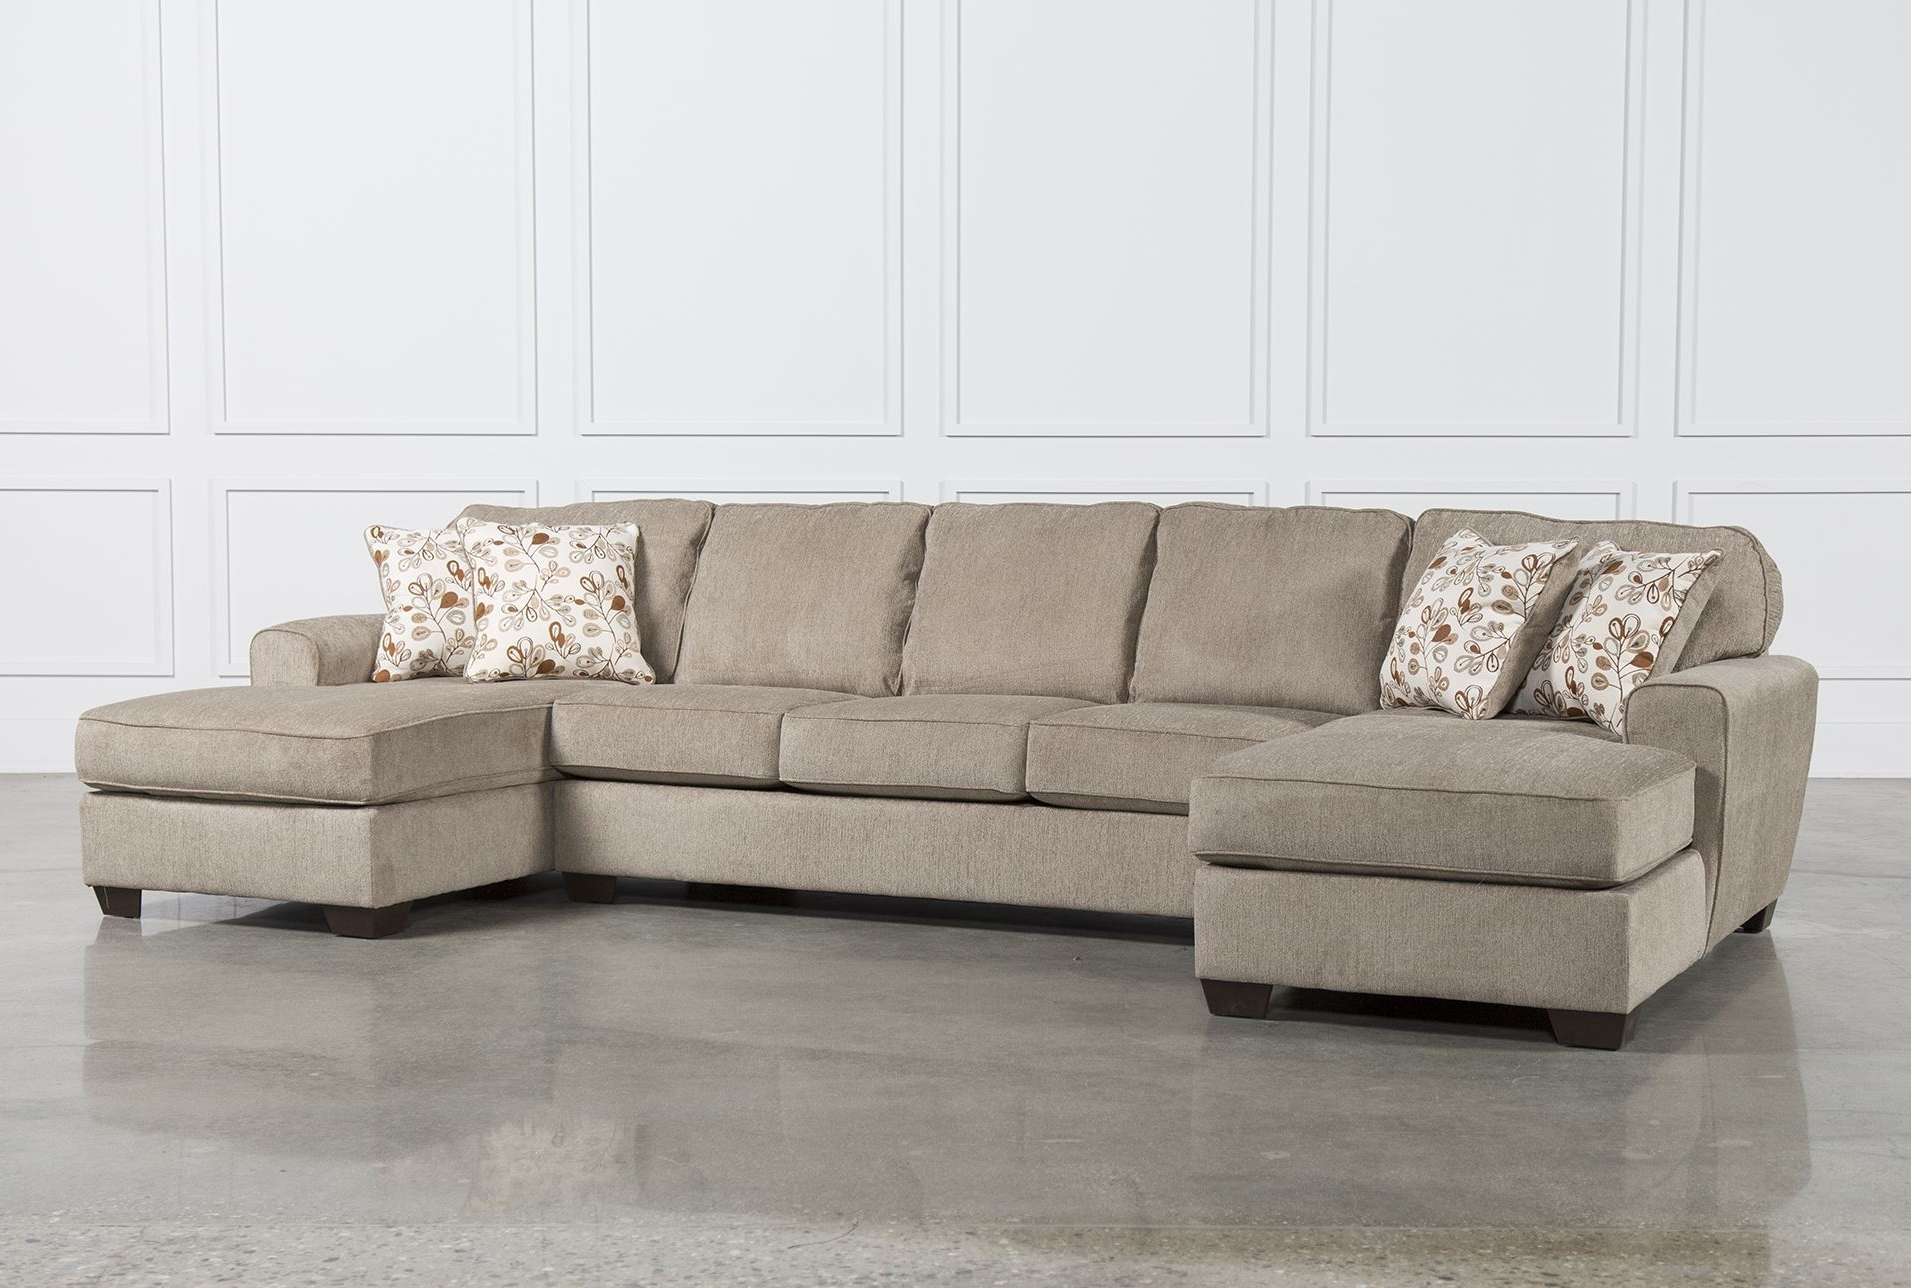 Www.energywarden intended for Kijiji Montreal Sectional Sofas